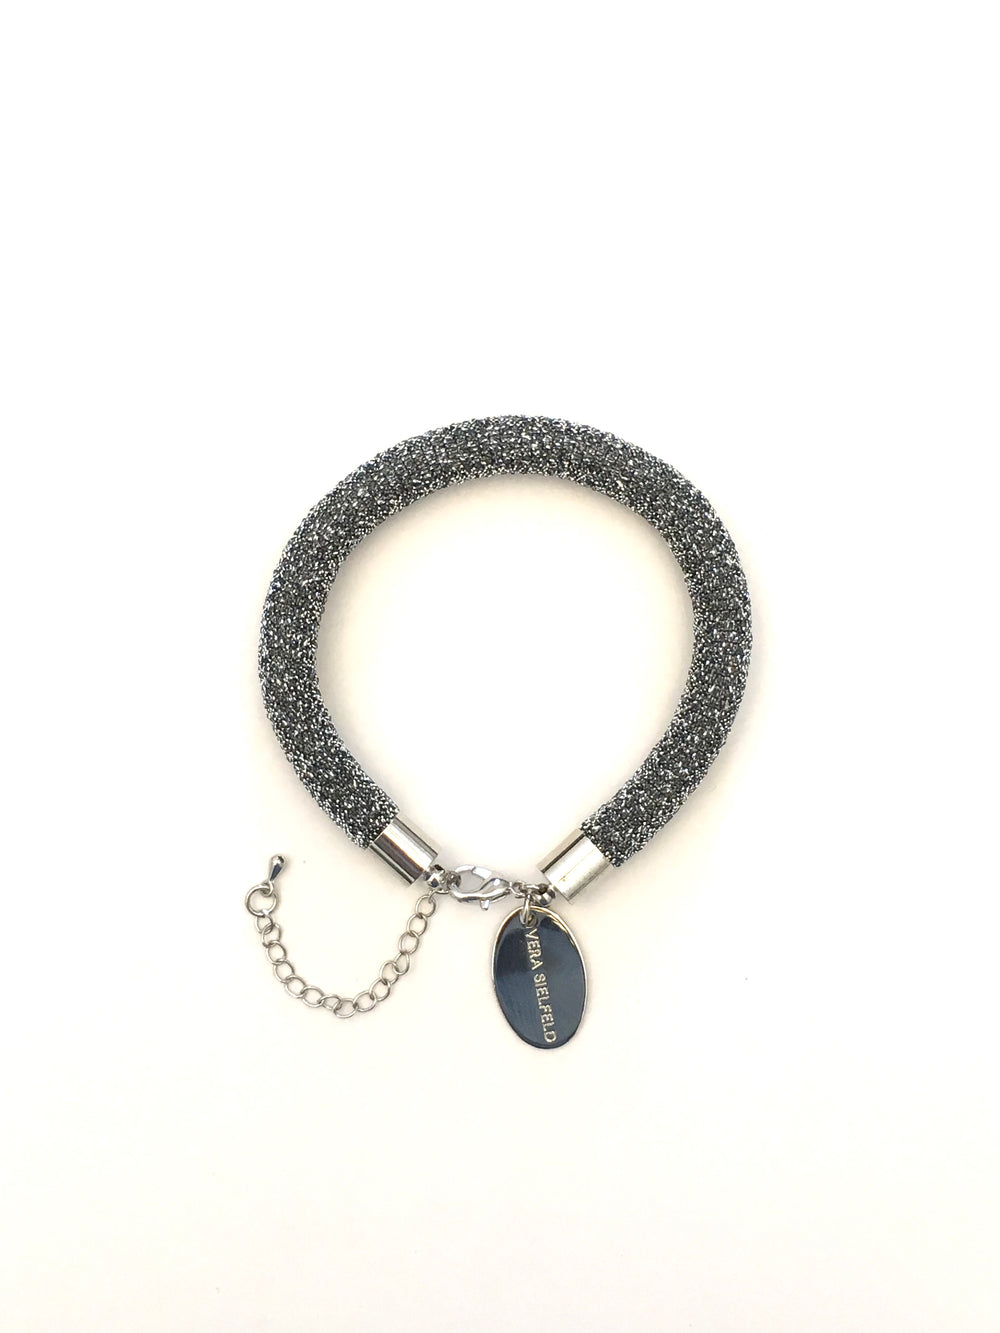 PULSERA SIMPLE plateado lurex brillo